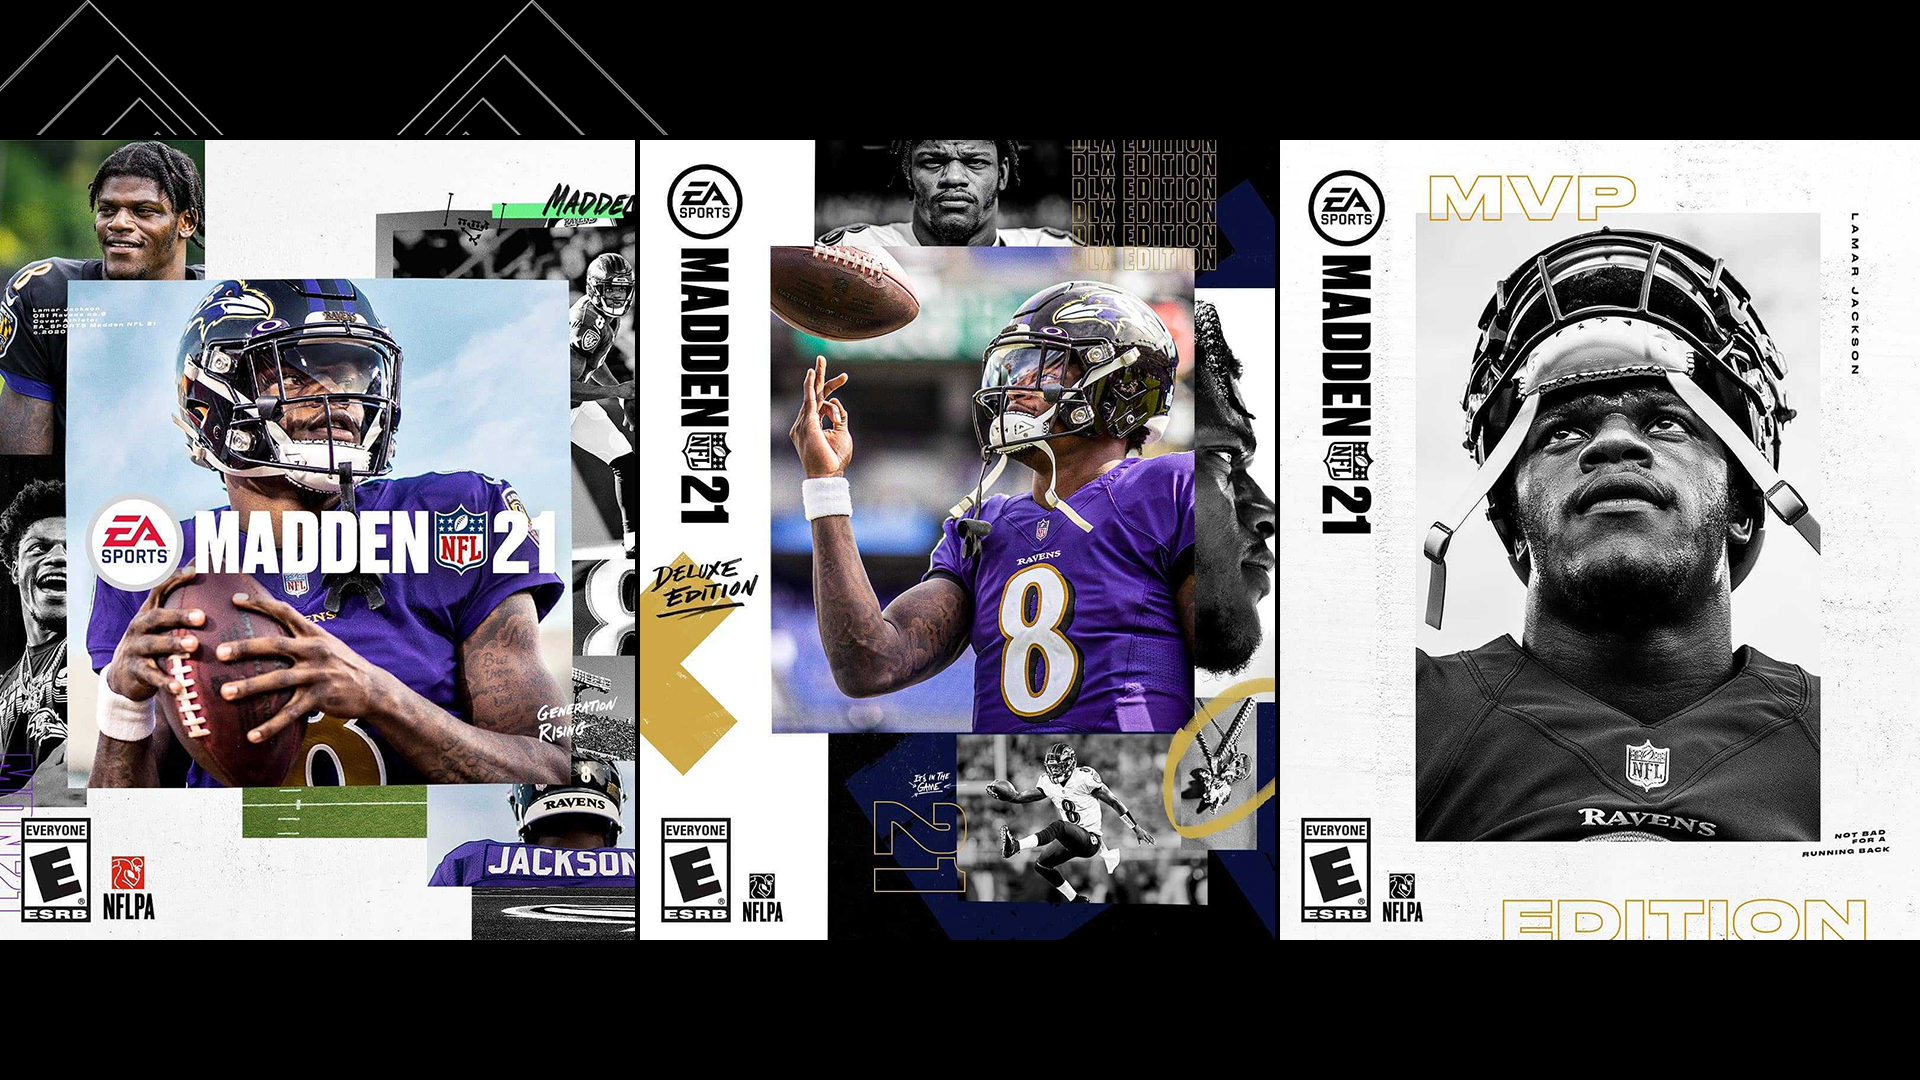 Madden 21 release date, cost, new features, editions: A guide to everything you need to know in 2020 4